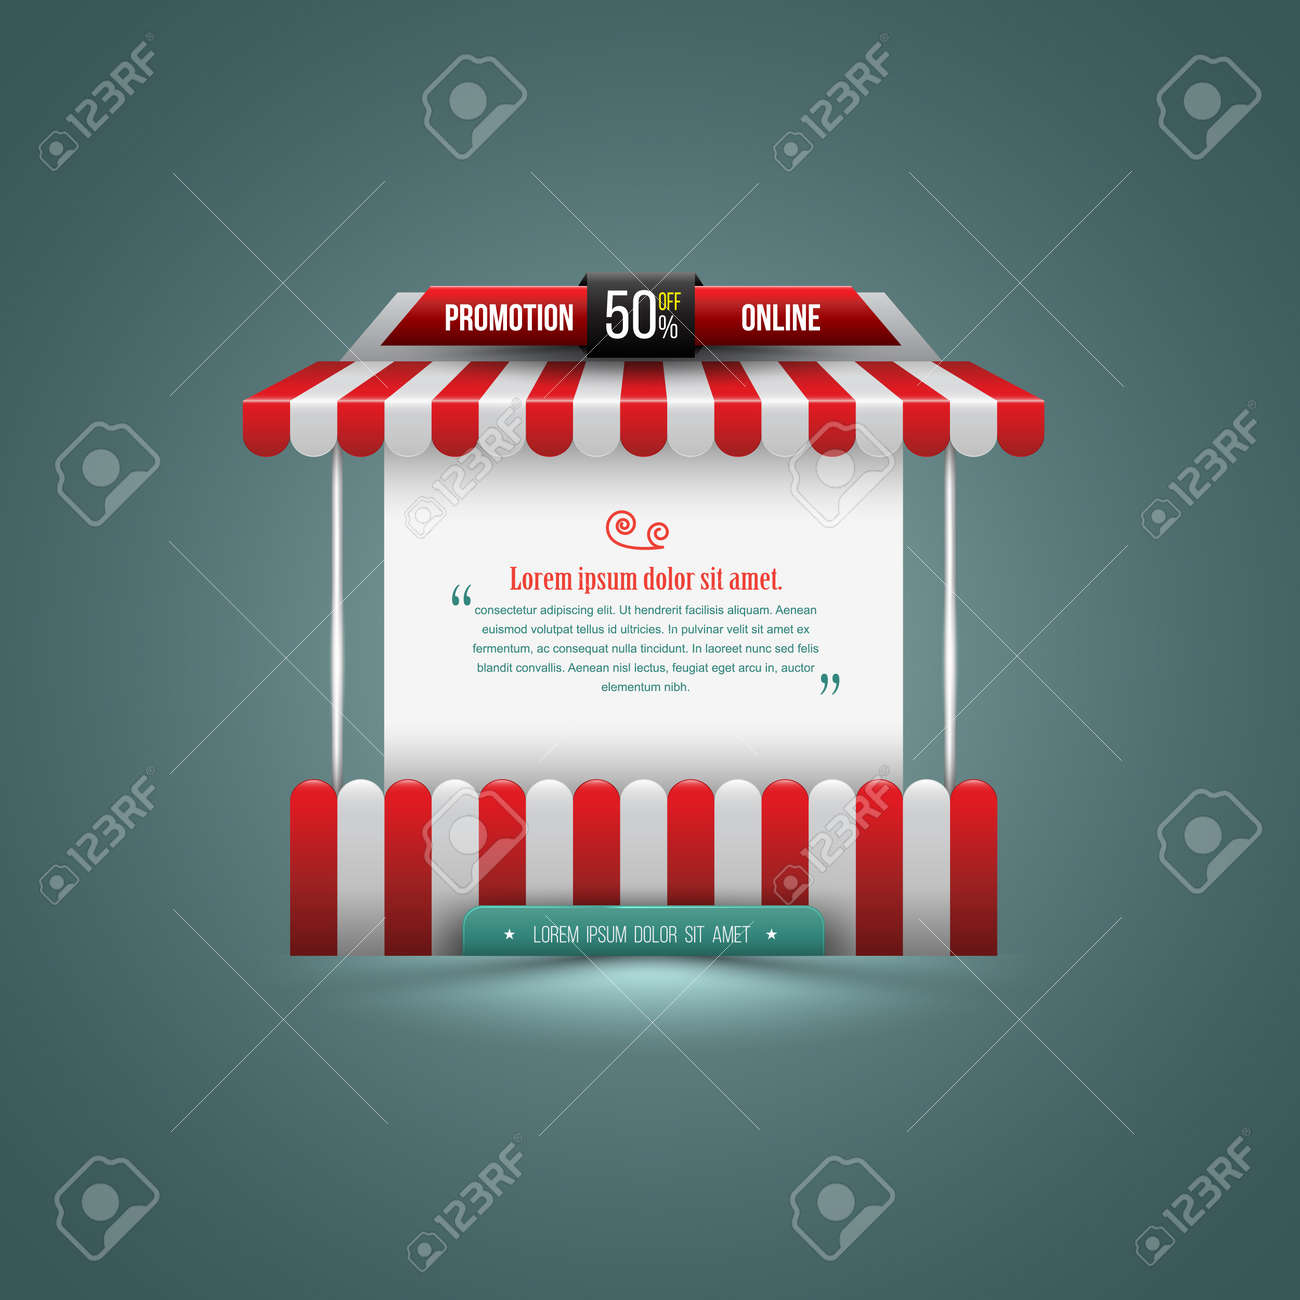 Vector illustration of a stall. Can use for promotion sale. Can use element for poster promotion and advertising. - 41723707